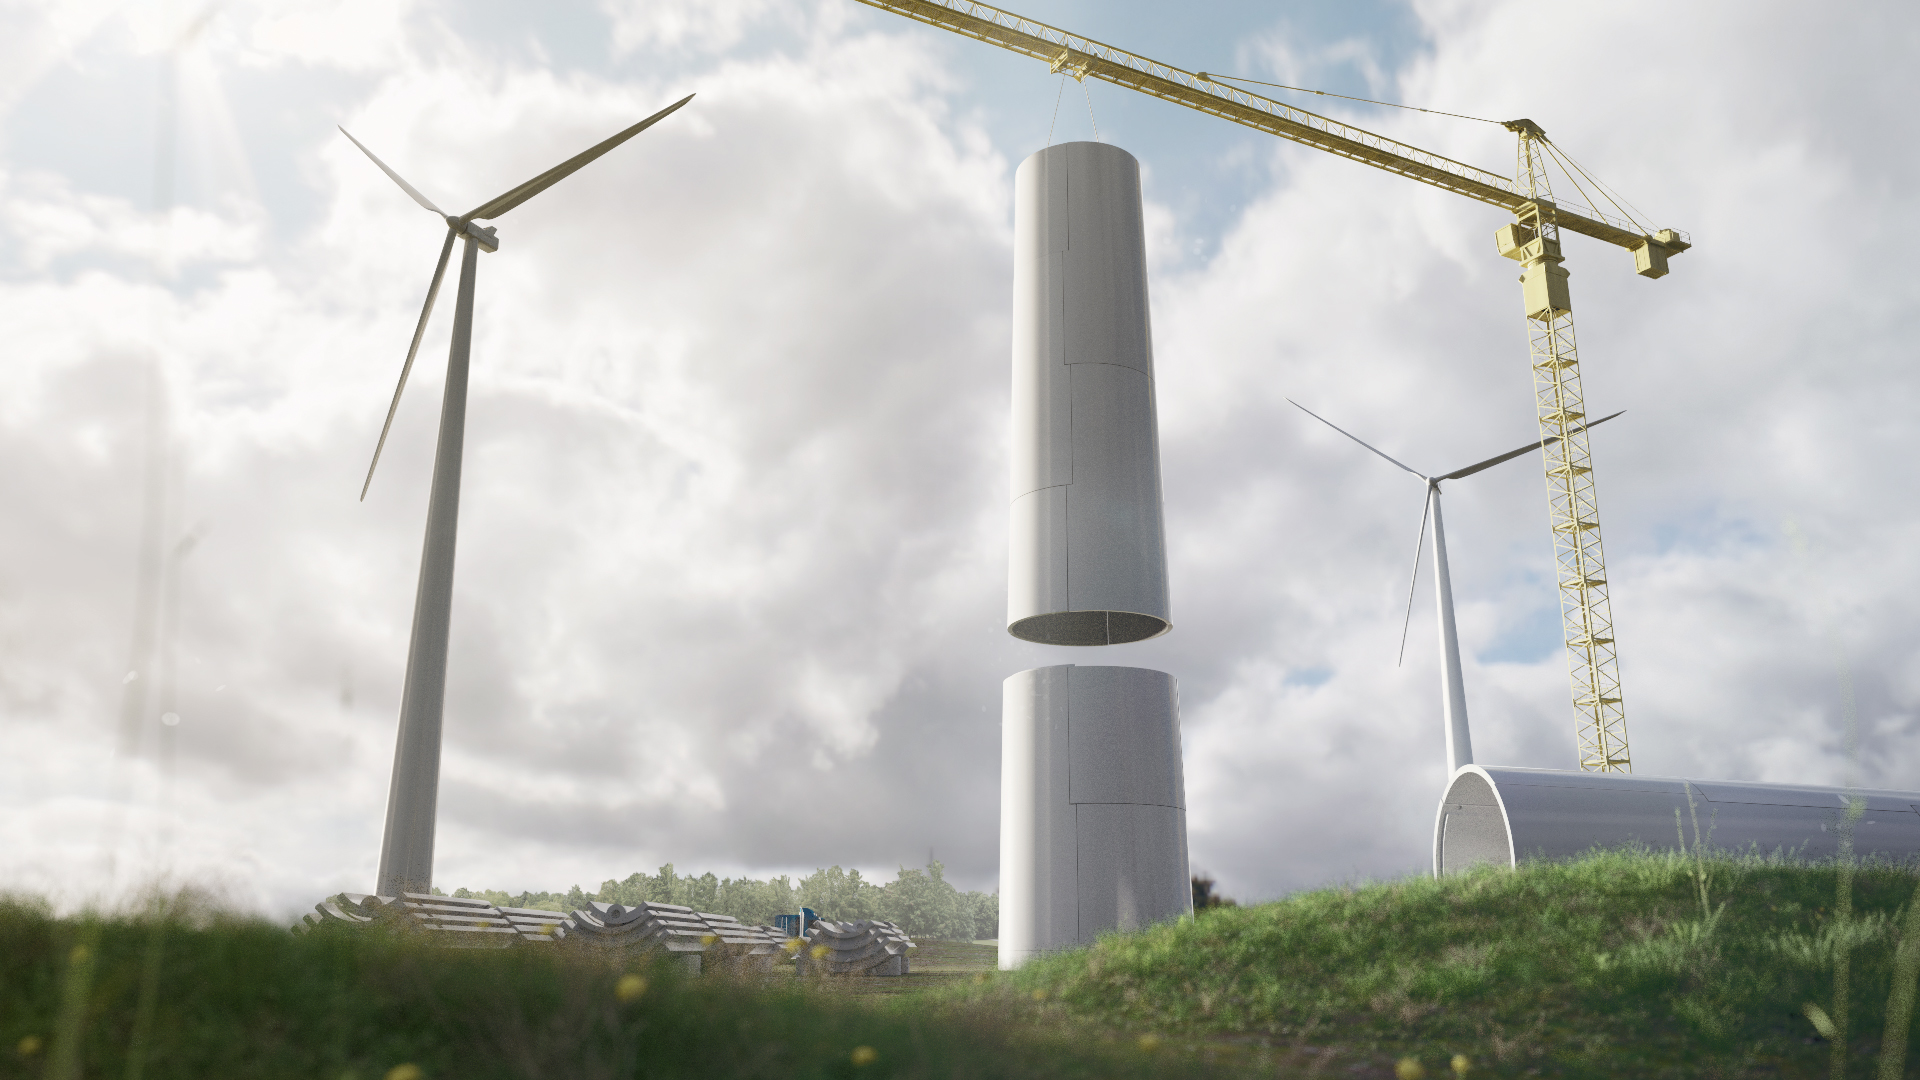 Vestas Ventures Makes First Investment With Stake in Wooden Tower Start-Up